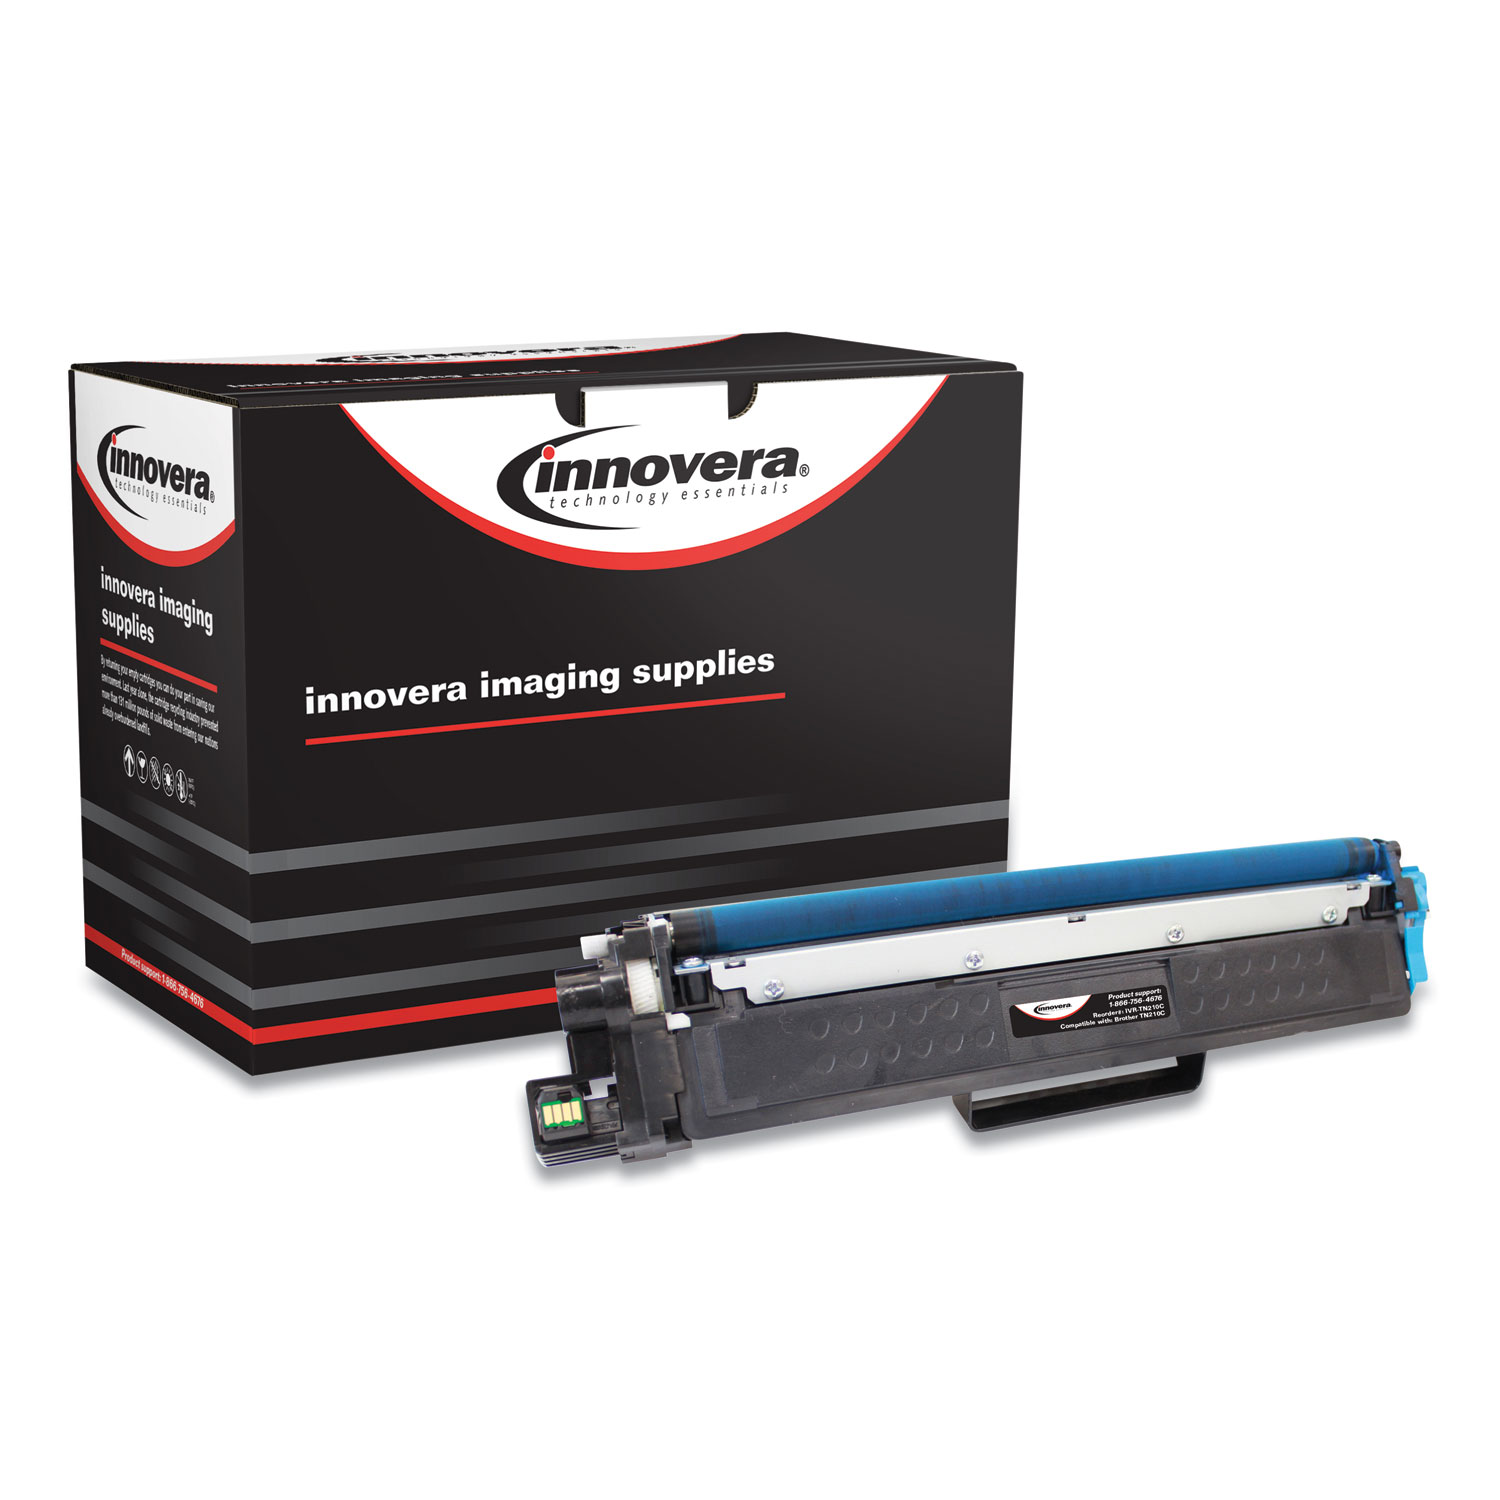 Innovera® Remanufactured Cyan Toner, Replacement for Brother TN223 (TN223C), 1,300 Page-Yield